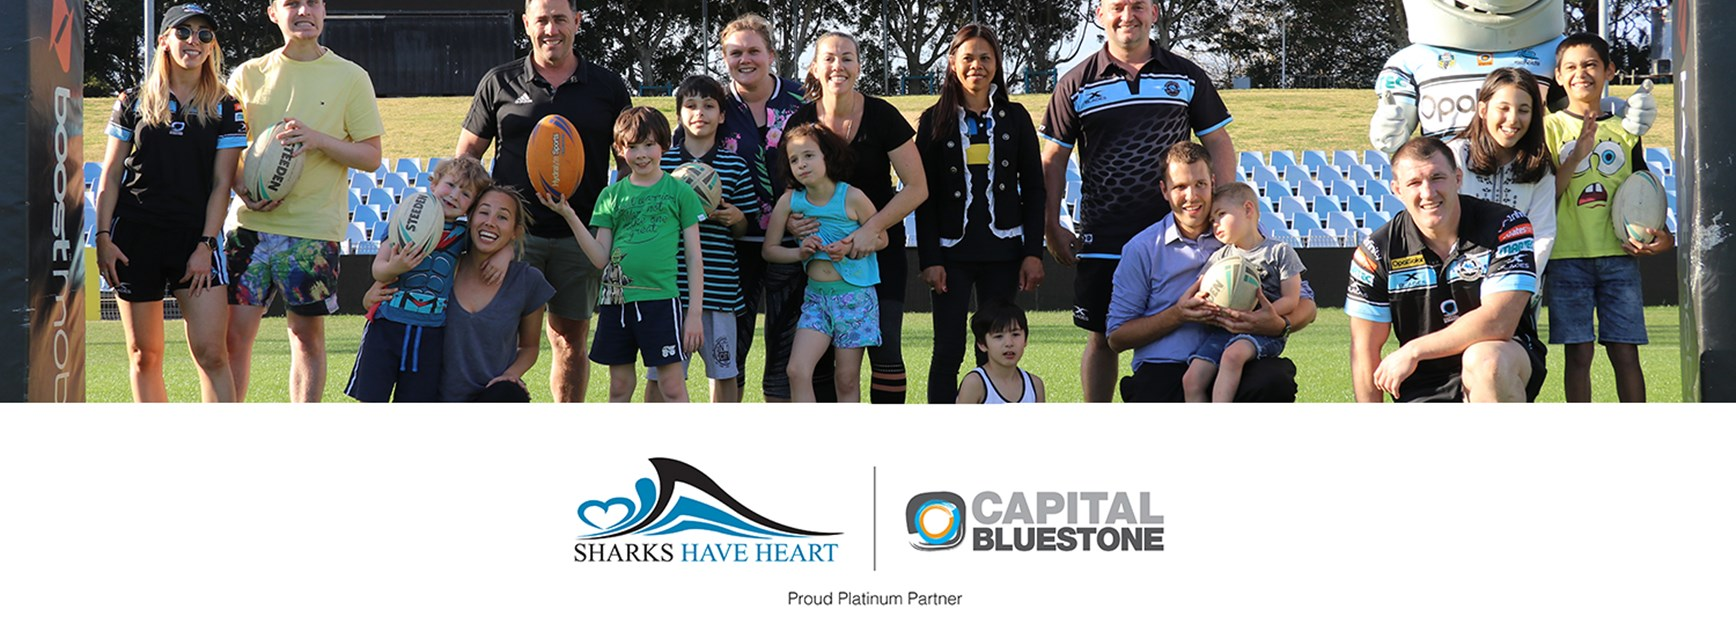 Sharks and Capital Bluestone 'Have Heart'